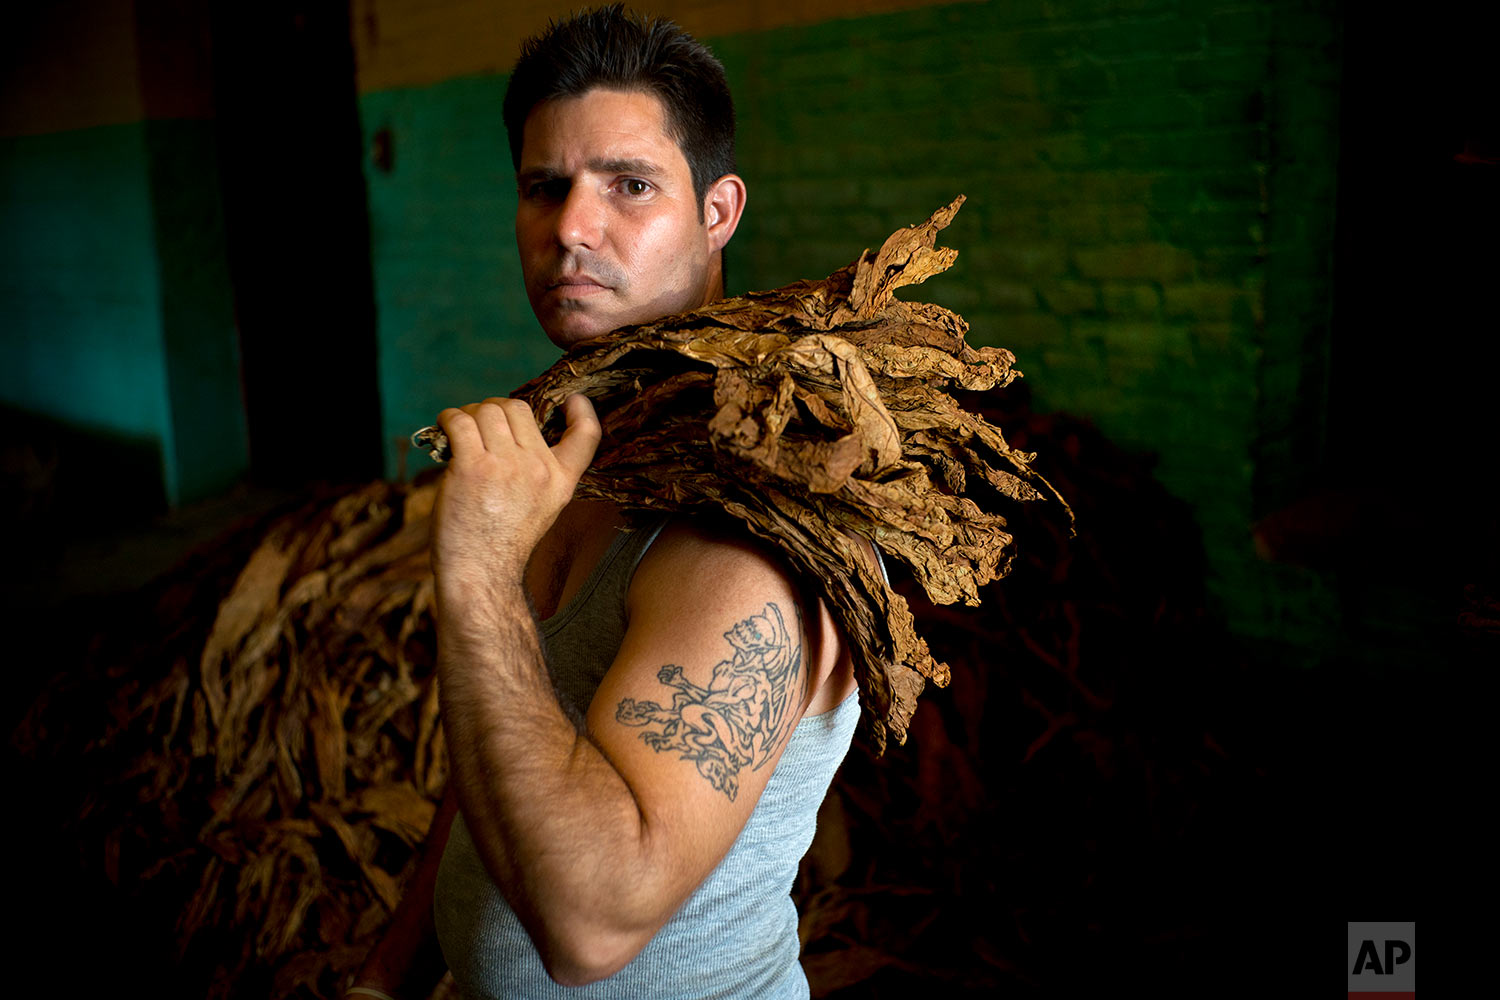 In this Feb. 27, 2018 photo, Juan Hernando Regalado Rosales, a worker specialized in the shaking process, poses with dry harvested tobacco leaves at a state-run warehouse in San Luis, in Cuba's Western province of Pinar del Rio. (AP Photo/ Ramon Espinosa)